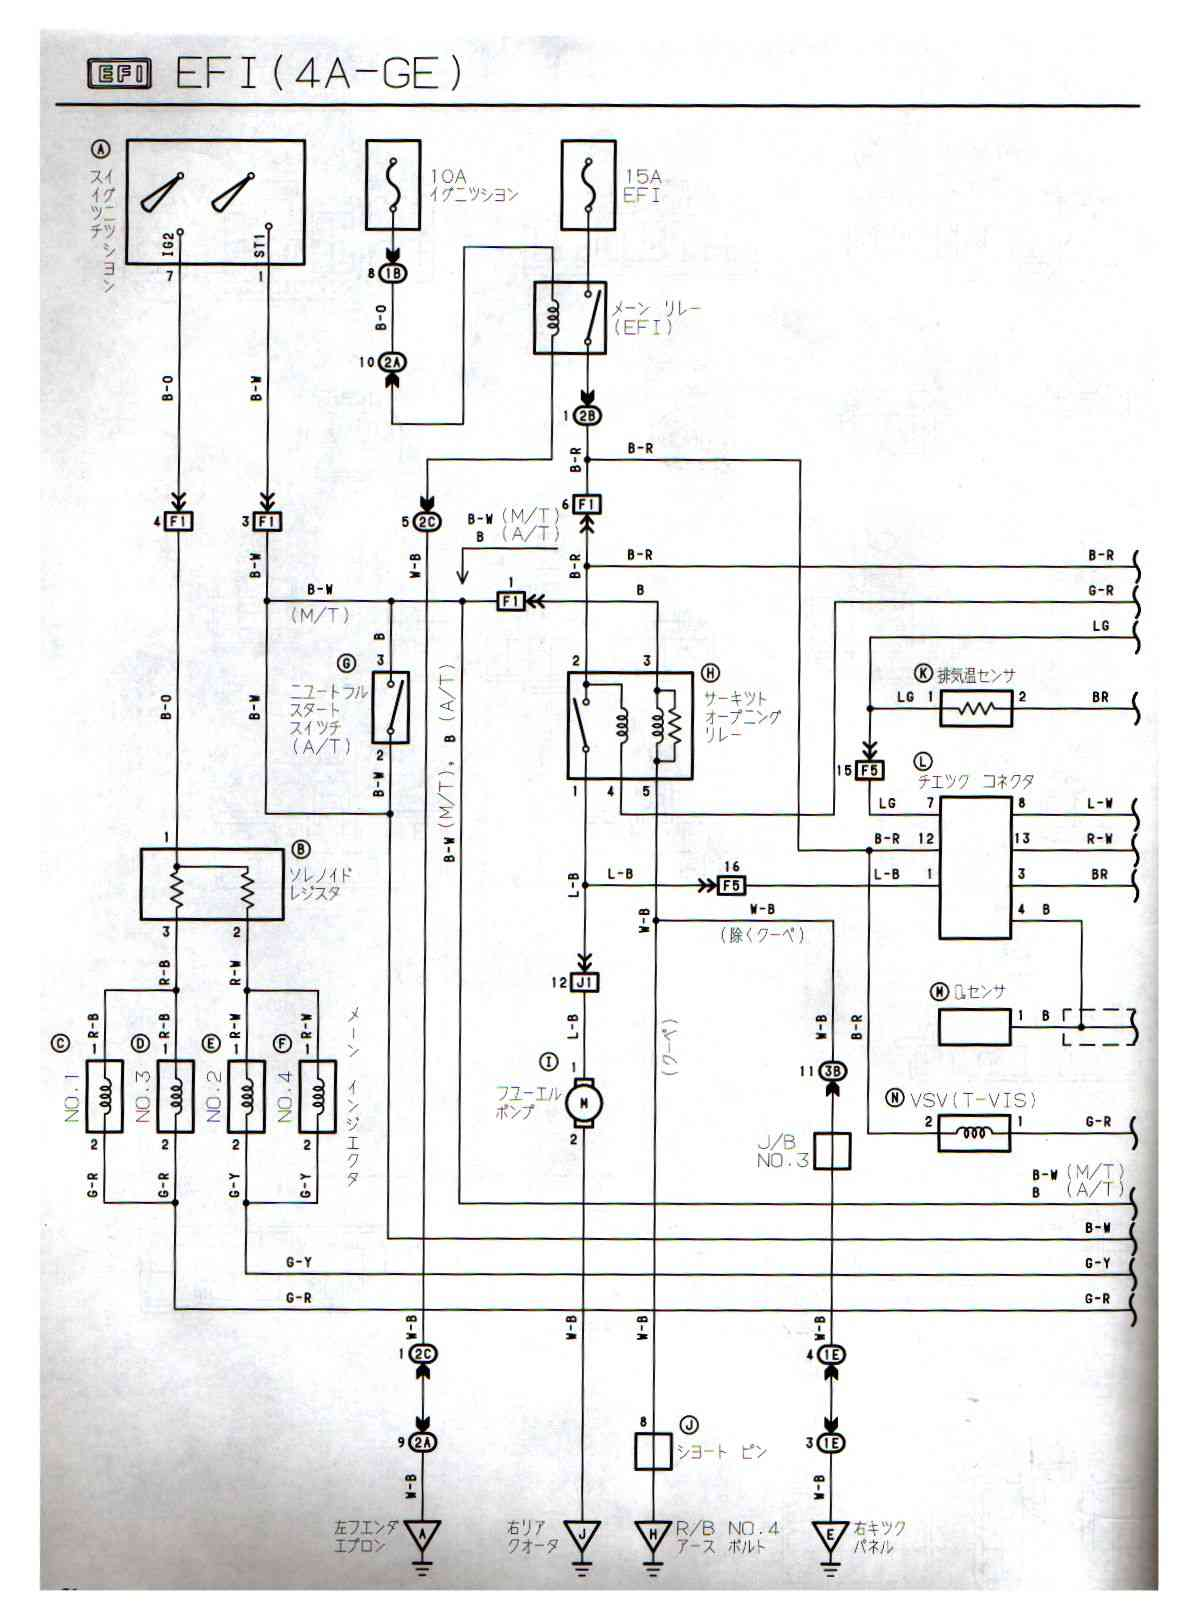 Toyota Ooh Latest Corolla Info N Pic Keretalama Corona 1972 Wiring Diagrams Online Manual Sharing